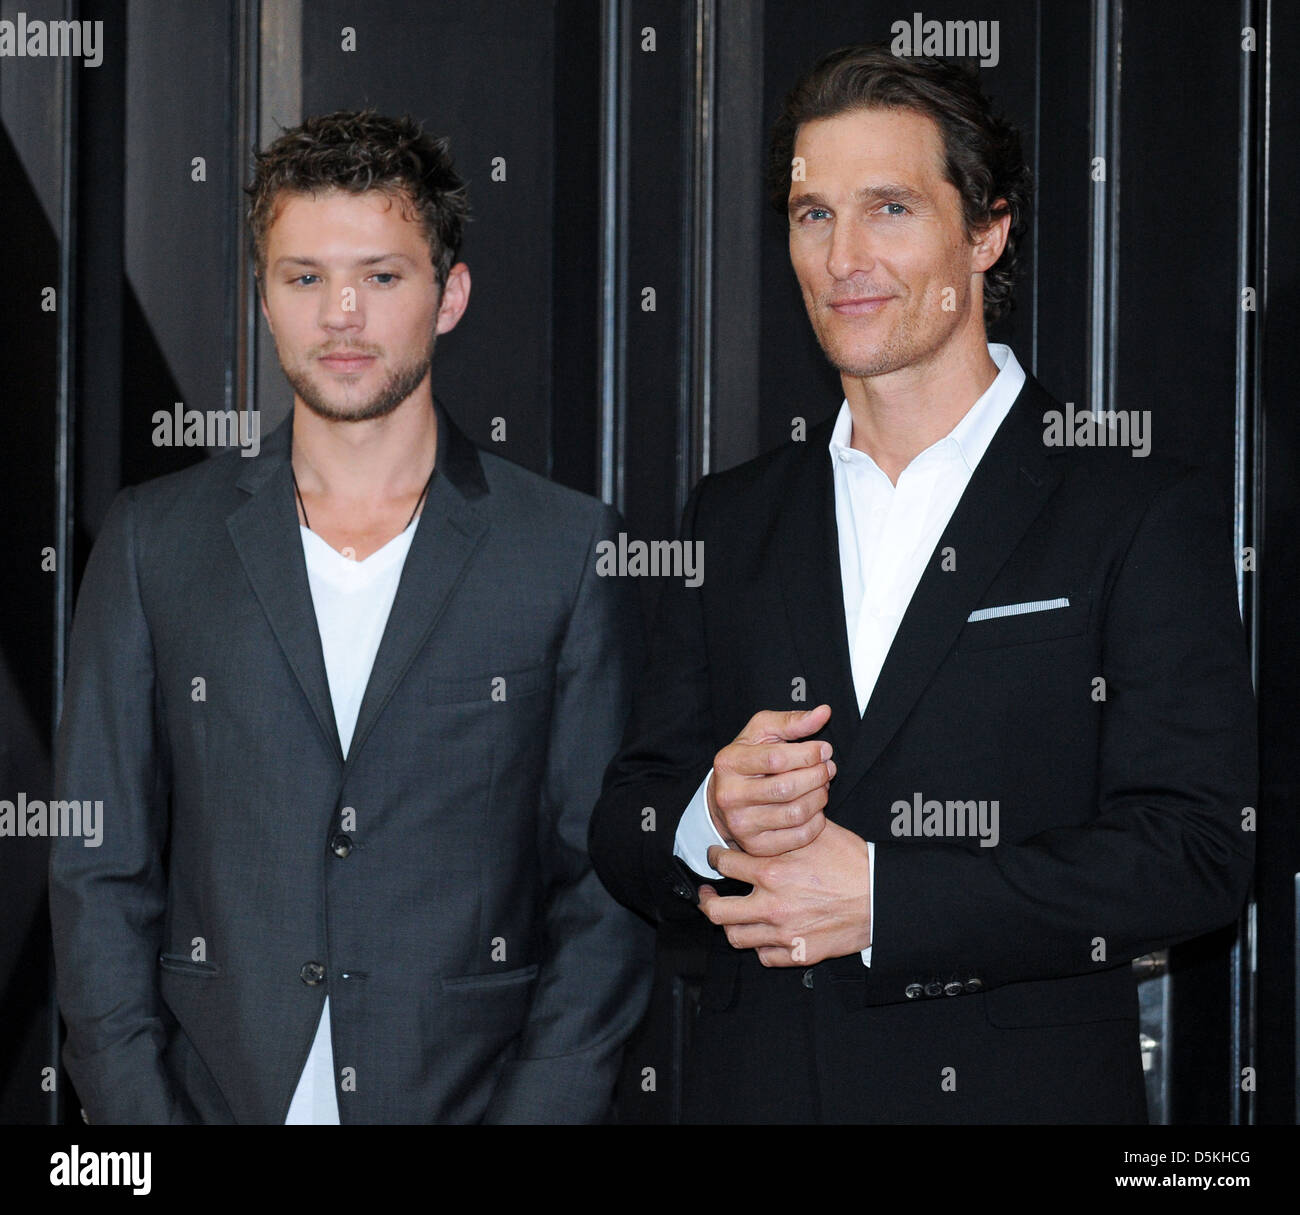 ryan phillippe and matthew mccongaughey at a photocall for the movie